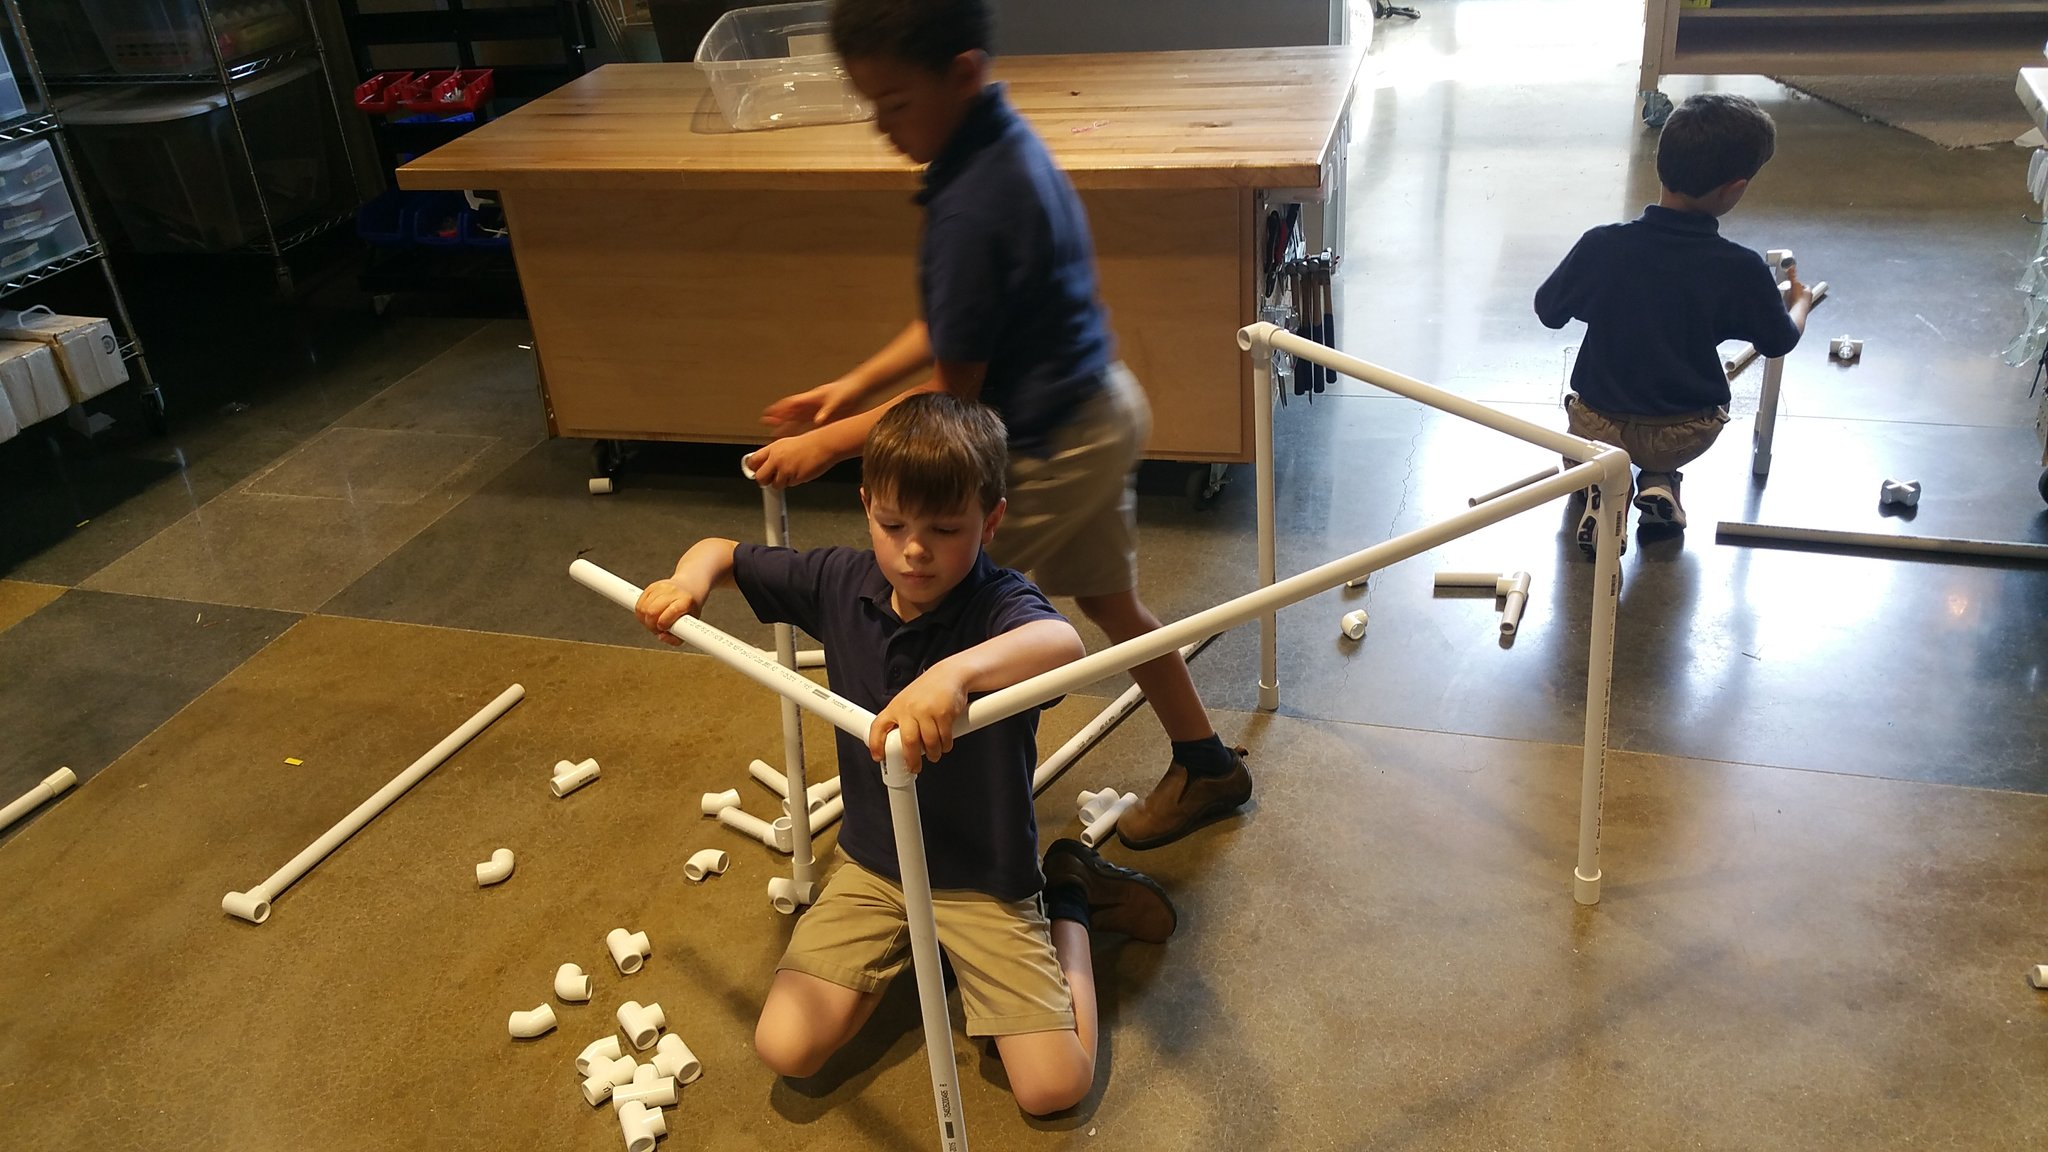 """It keeps falling apart! How do we make our table more stable? Hey, that rhymes!"" #kidquote Instigations w/PVC #MakerEd #elemaker #MVPSchool https://t.co/1Te2xMLHcI"